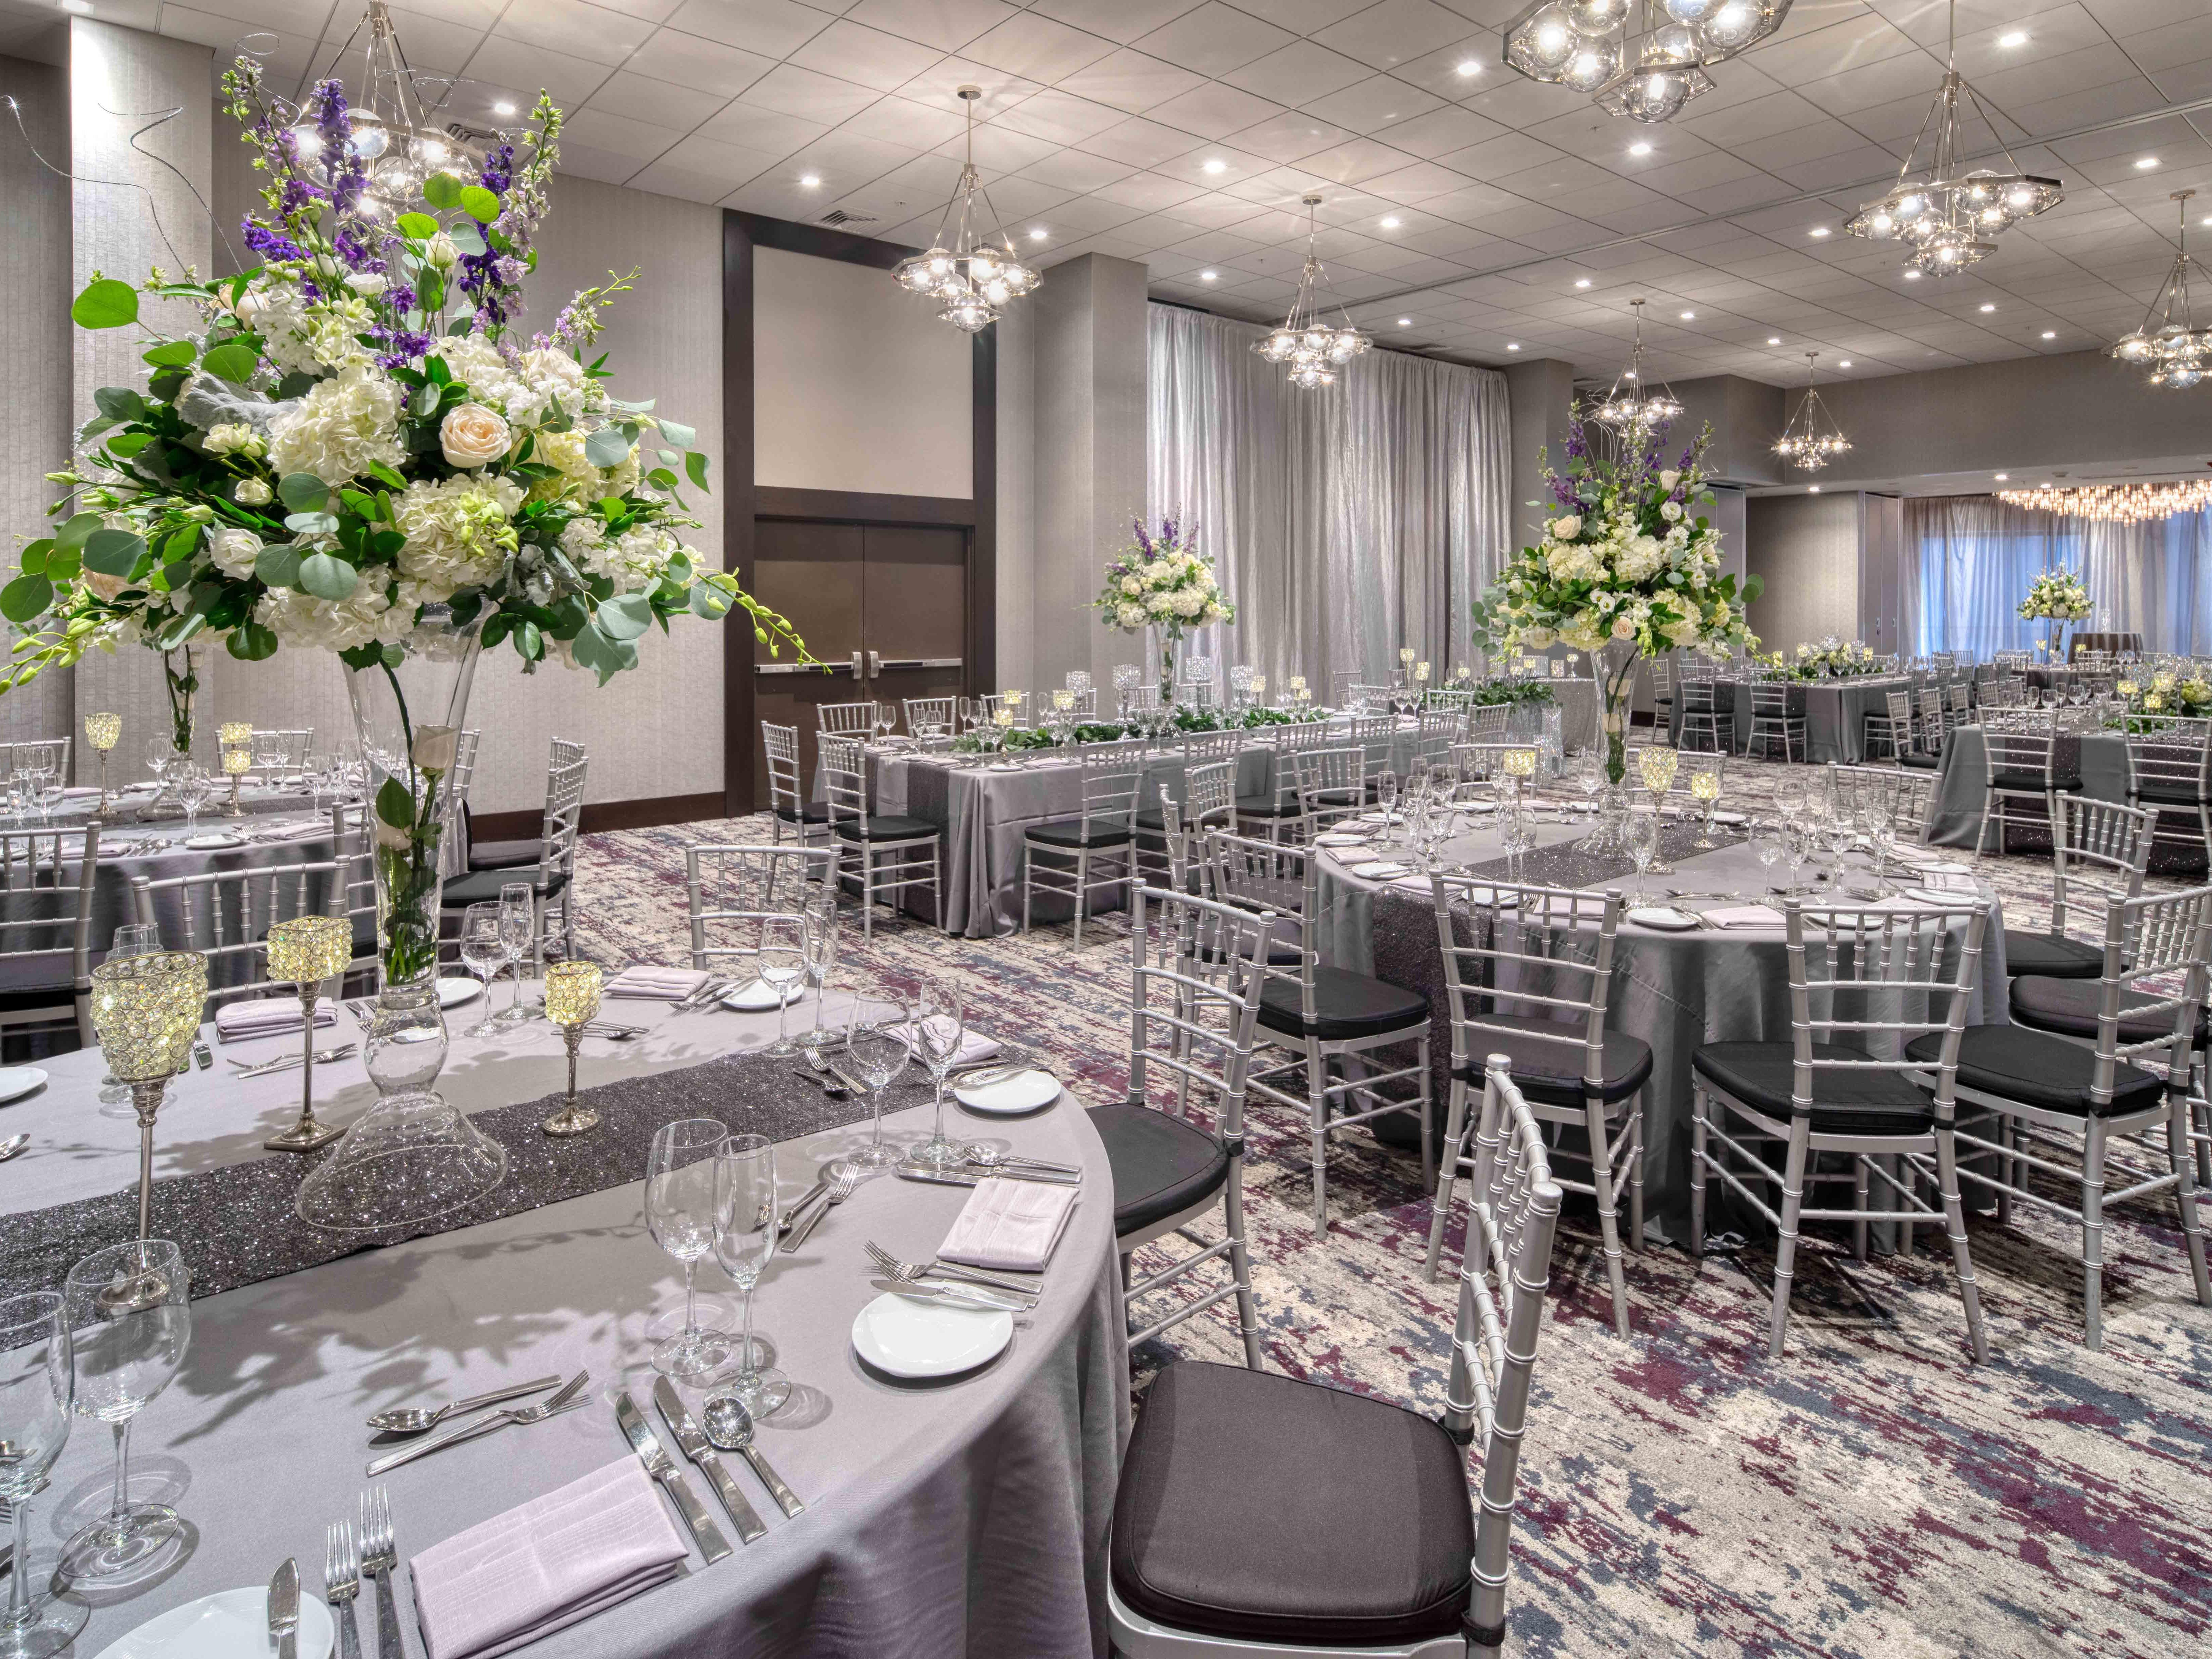 banquet room with elegantly decorated tables